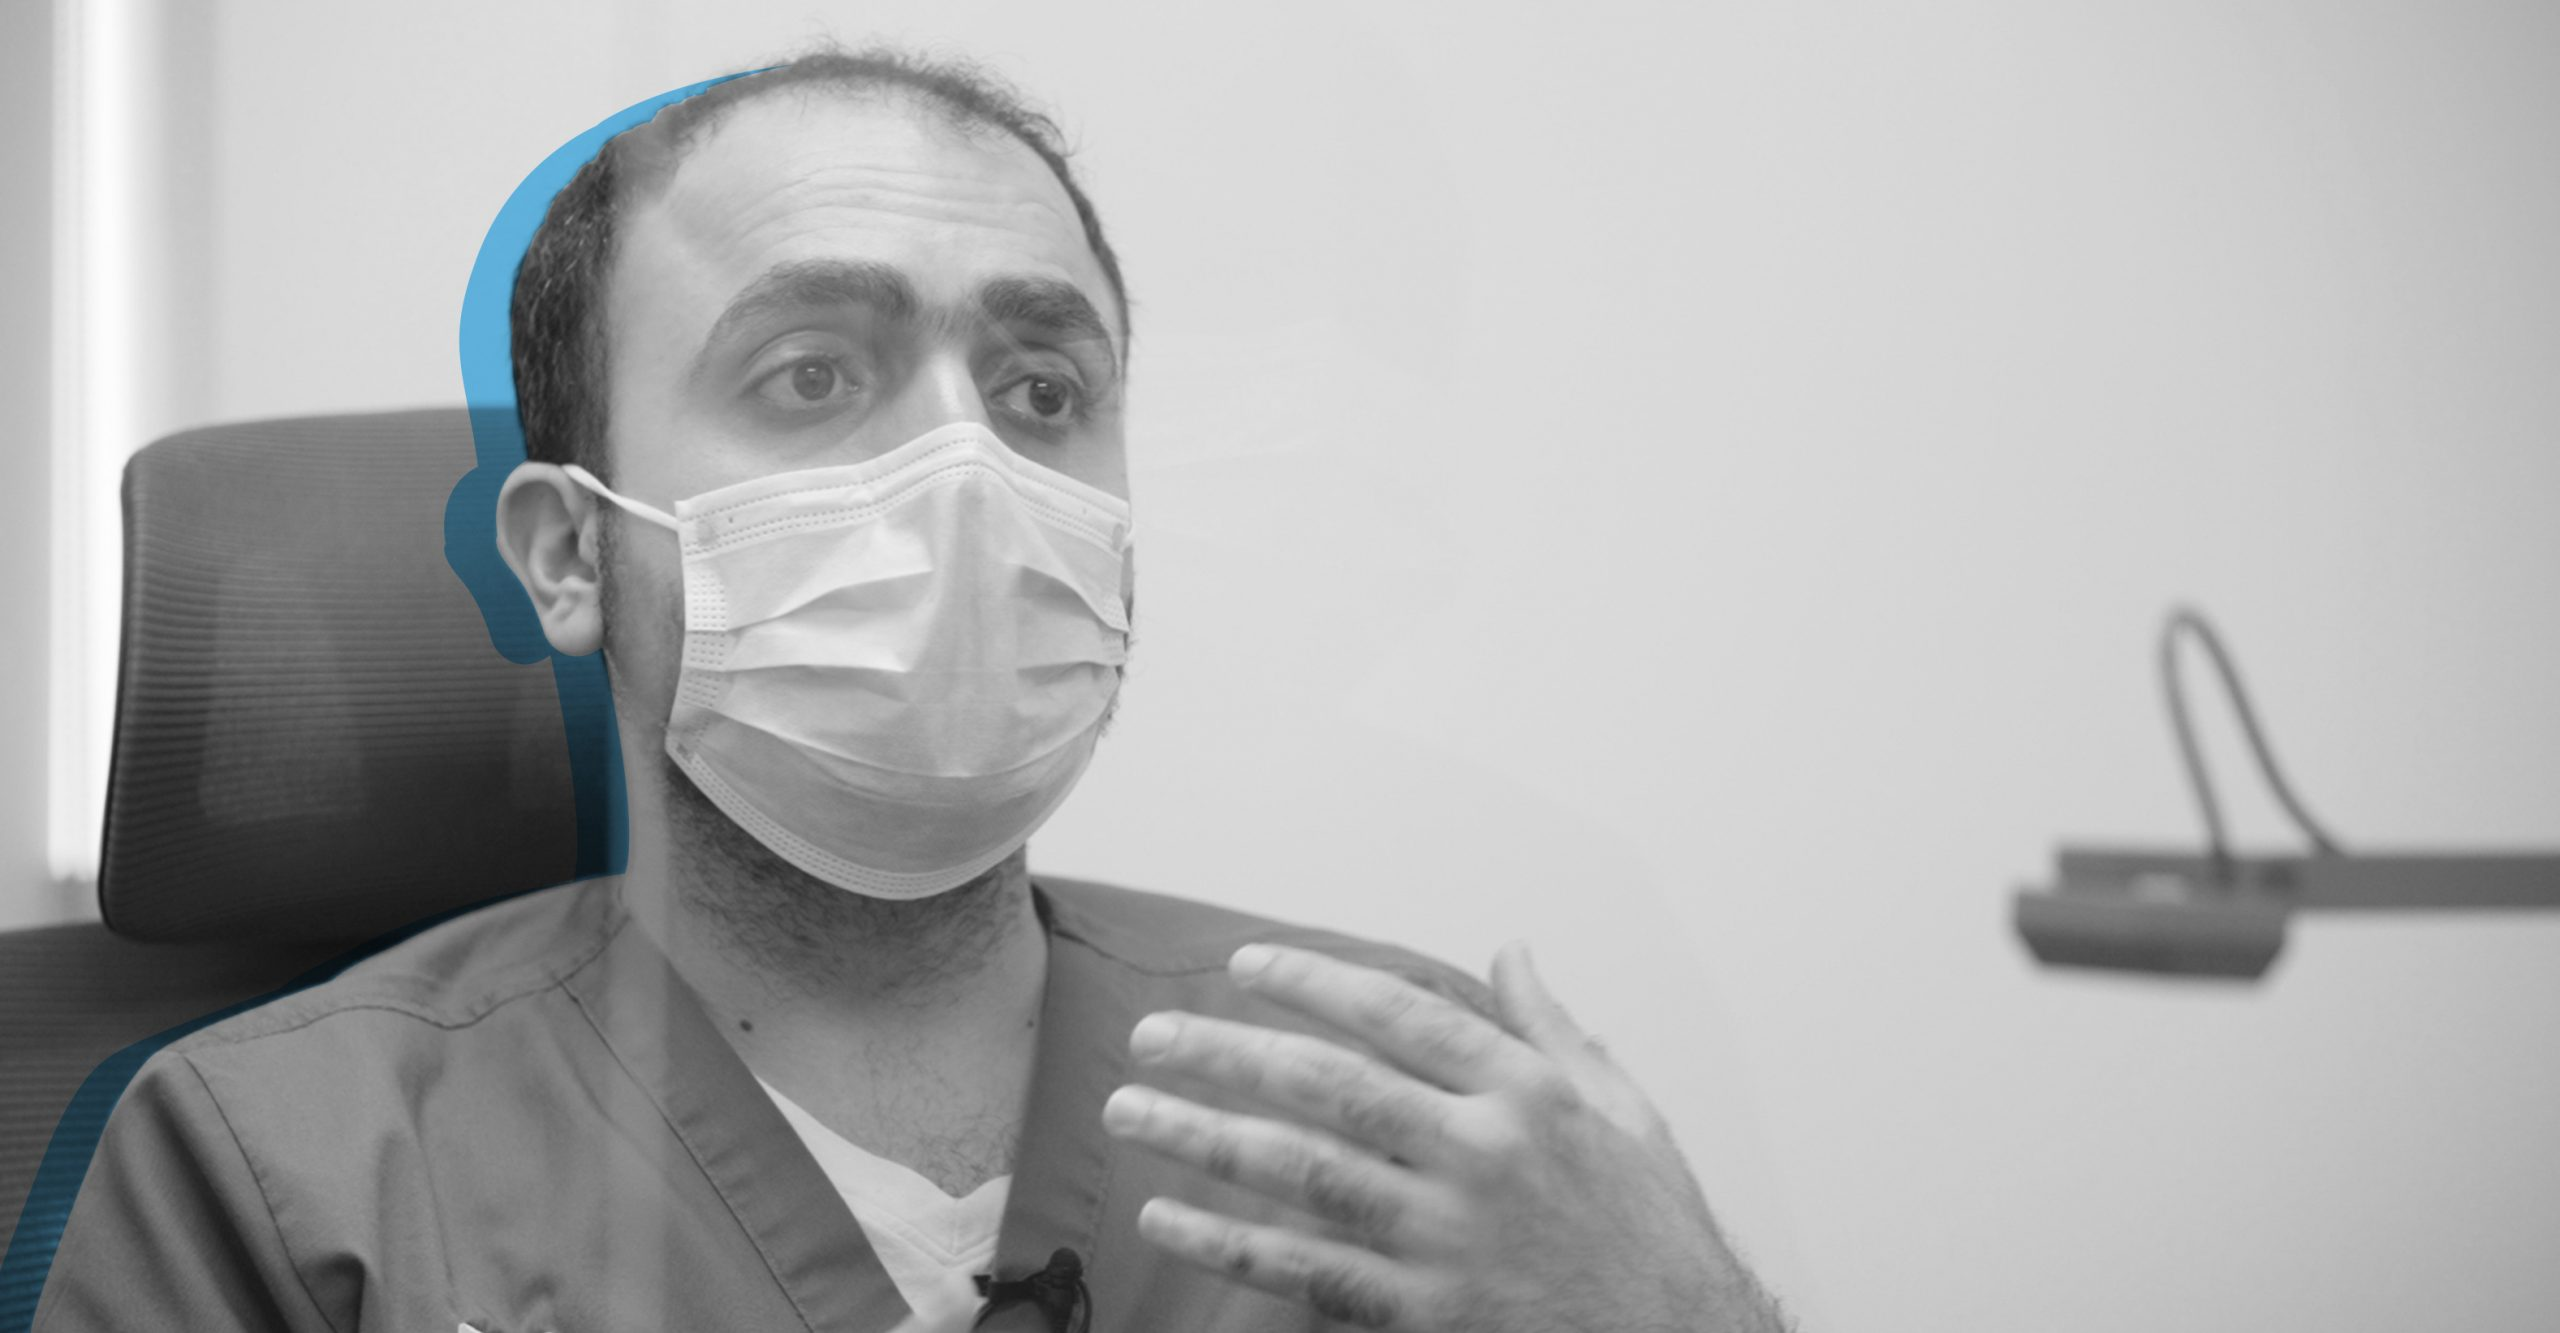 Senior clinical skills instructor, Dr. Fersan Marei, explains some of the changes that have been made to our ACS course that will ensure the health and safety of both staff and trainees at Prep Doctors.